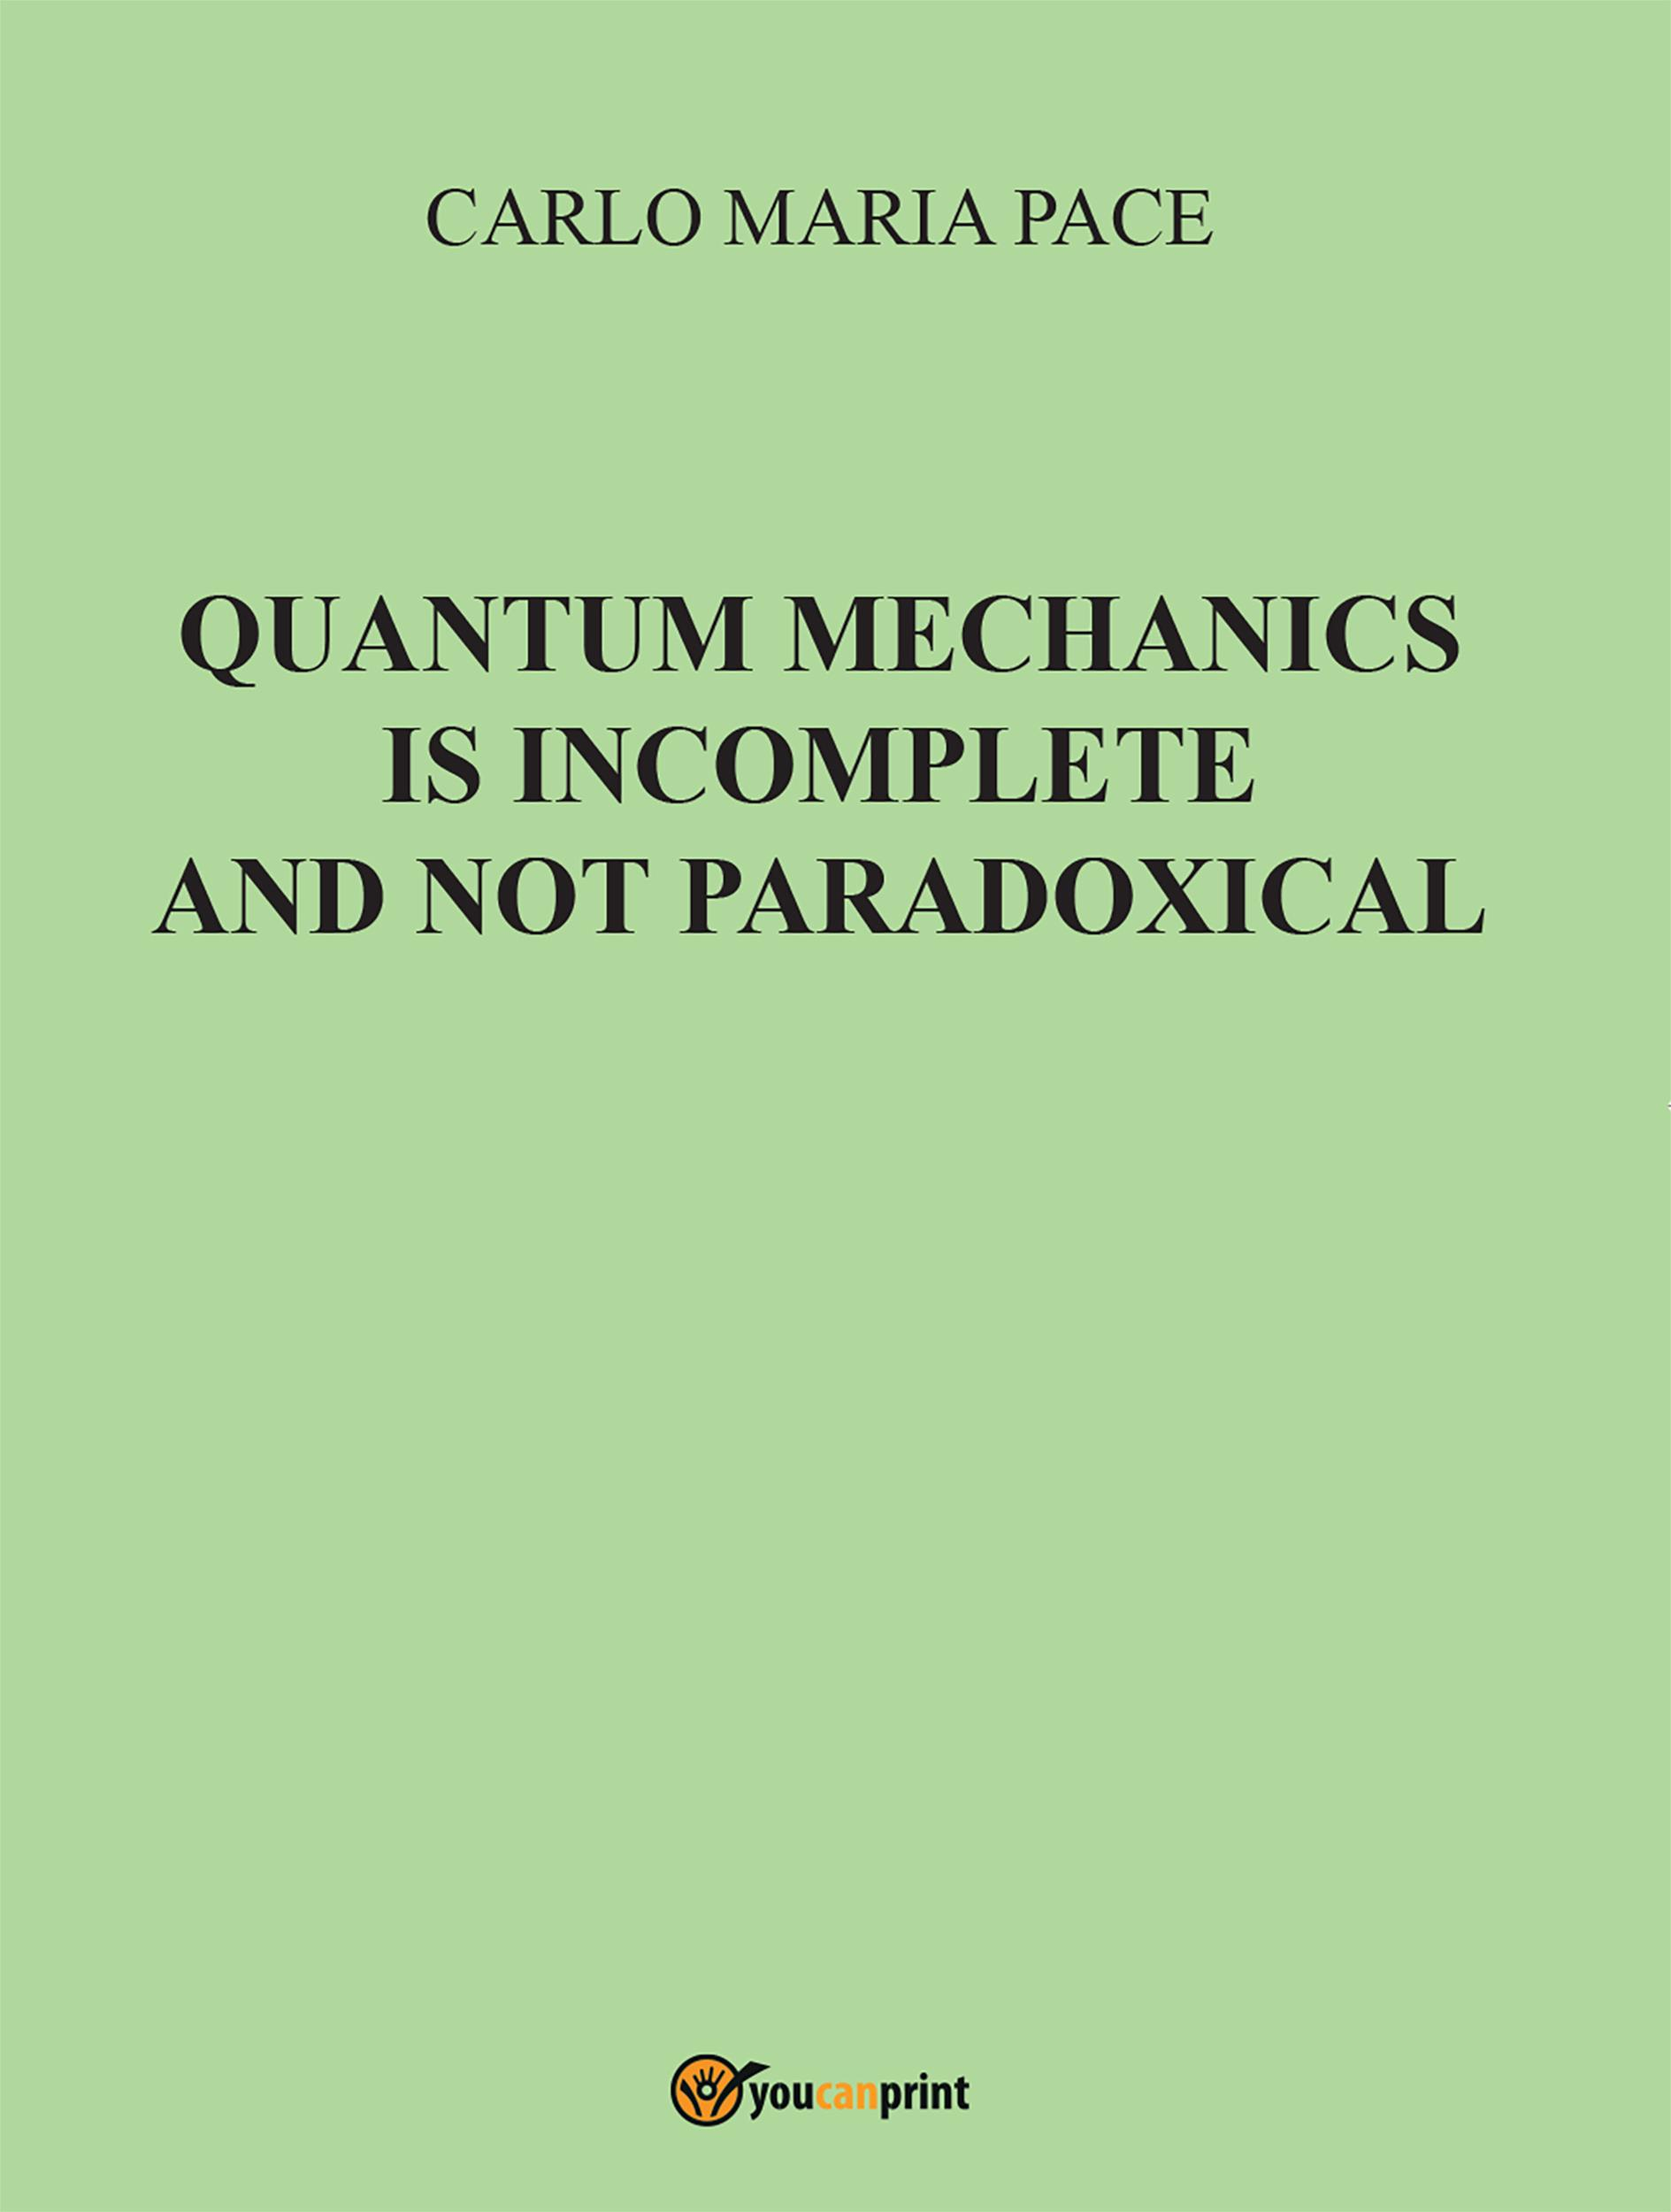 Quantum Mechanics is incomplete and not paradoxical